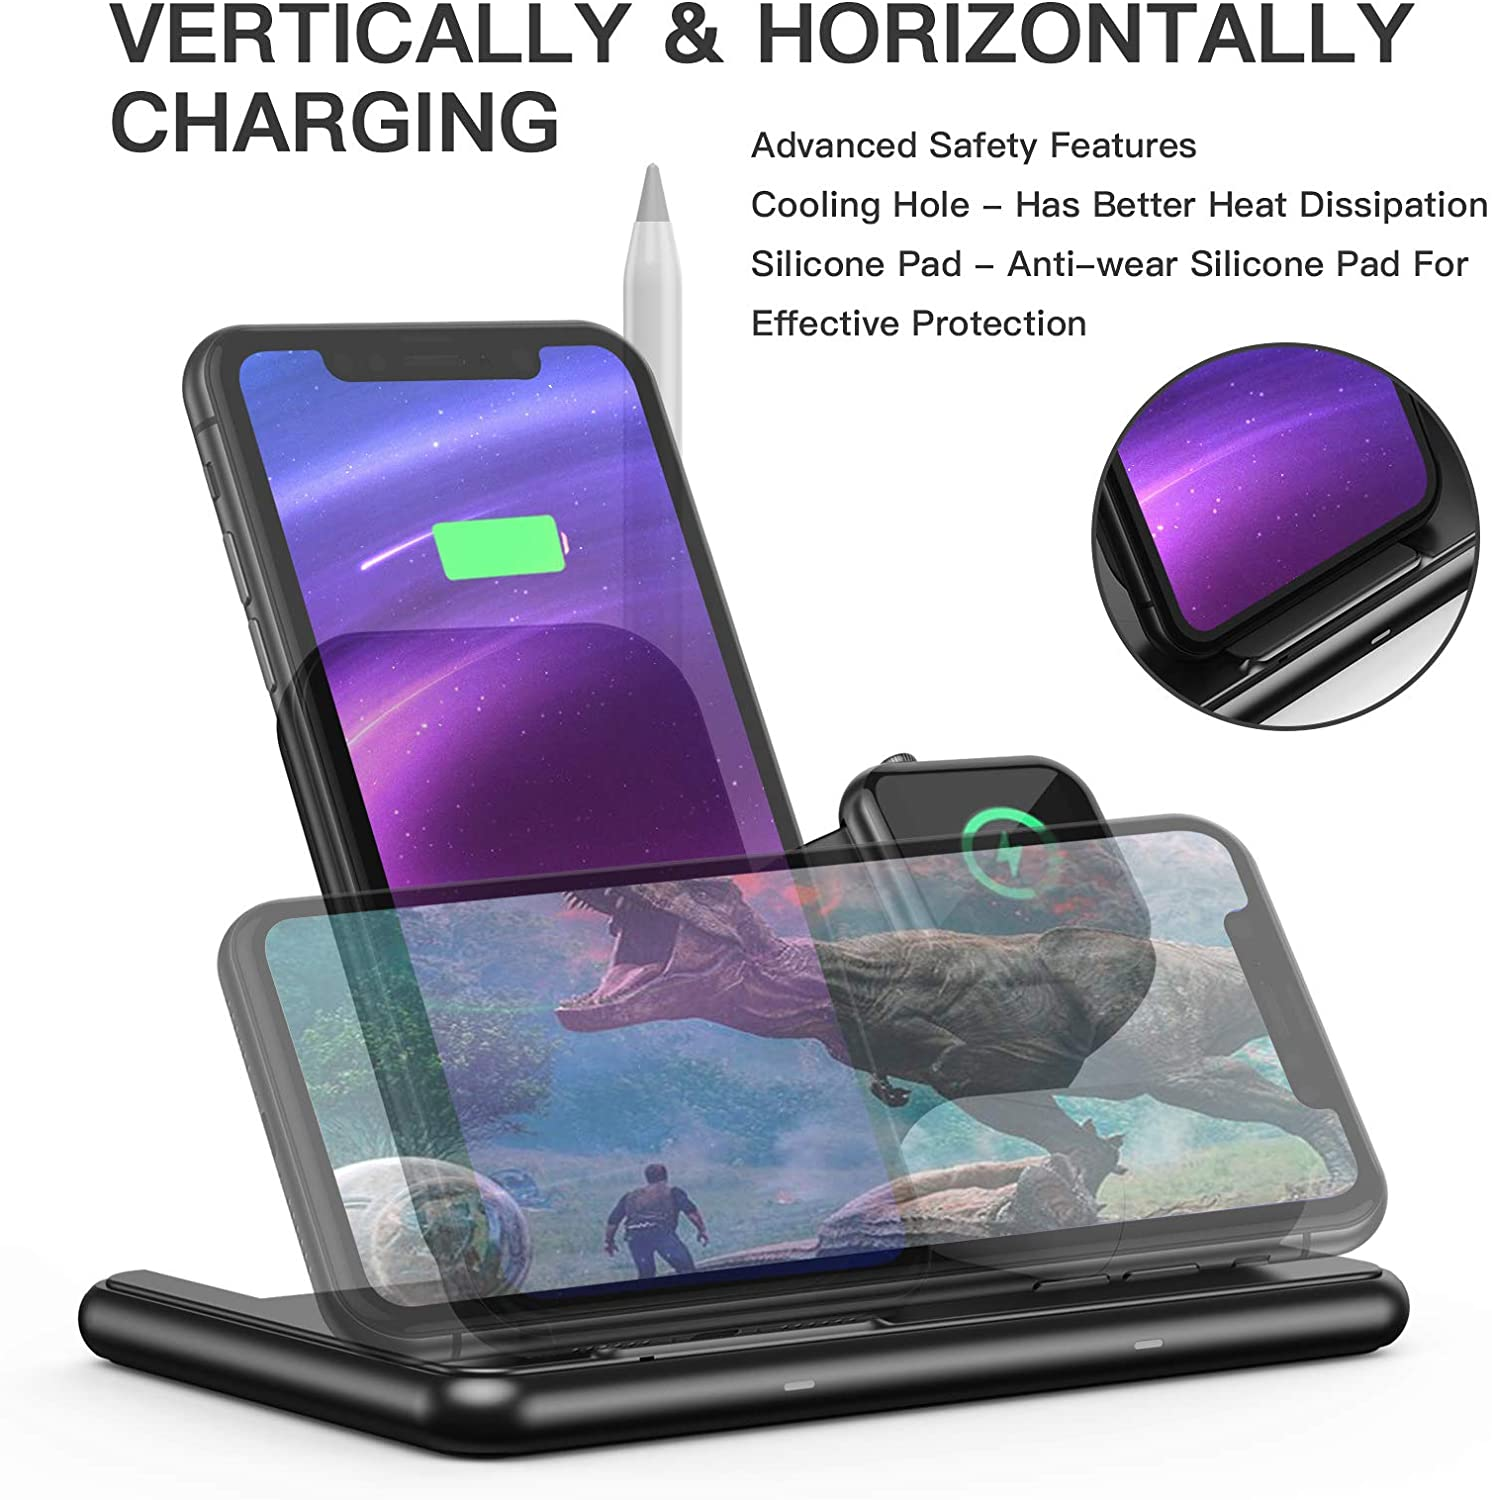 Horizontal charging 4 in 1 apple iPhone charger.